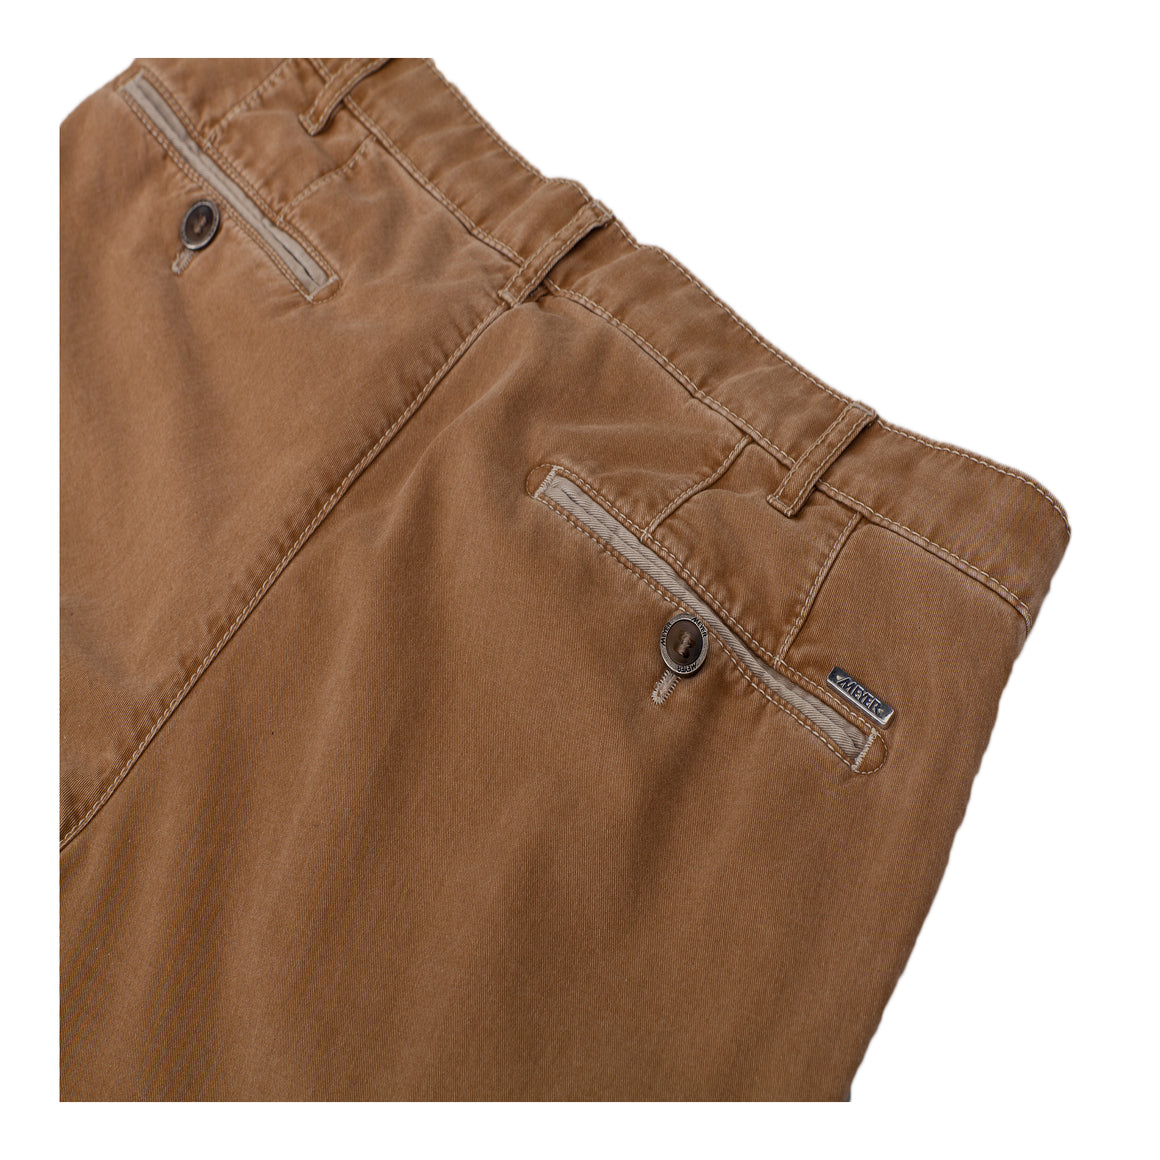 New York Soft Twill Trousers for Men in Tan